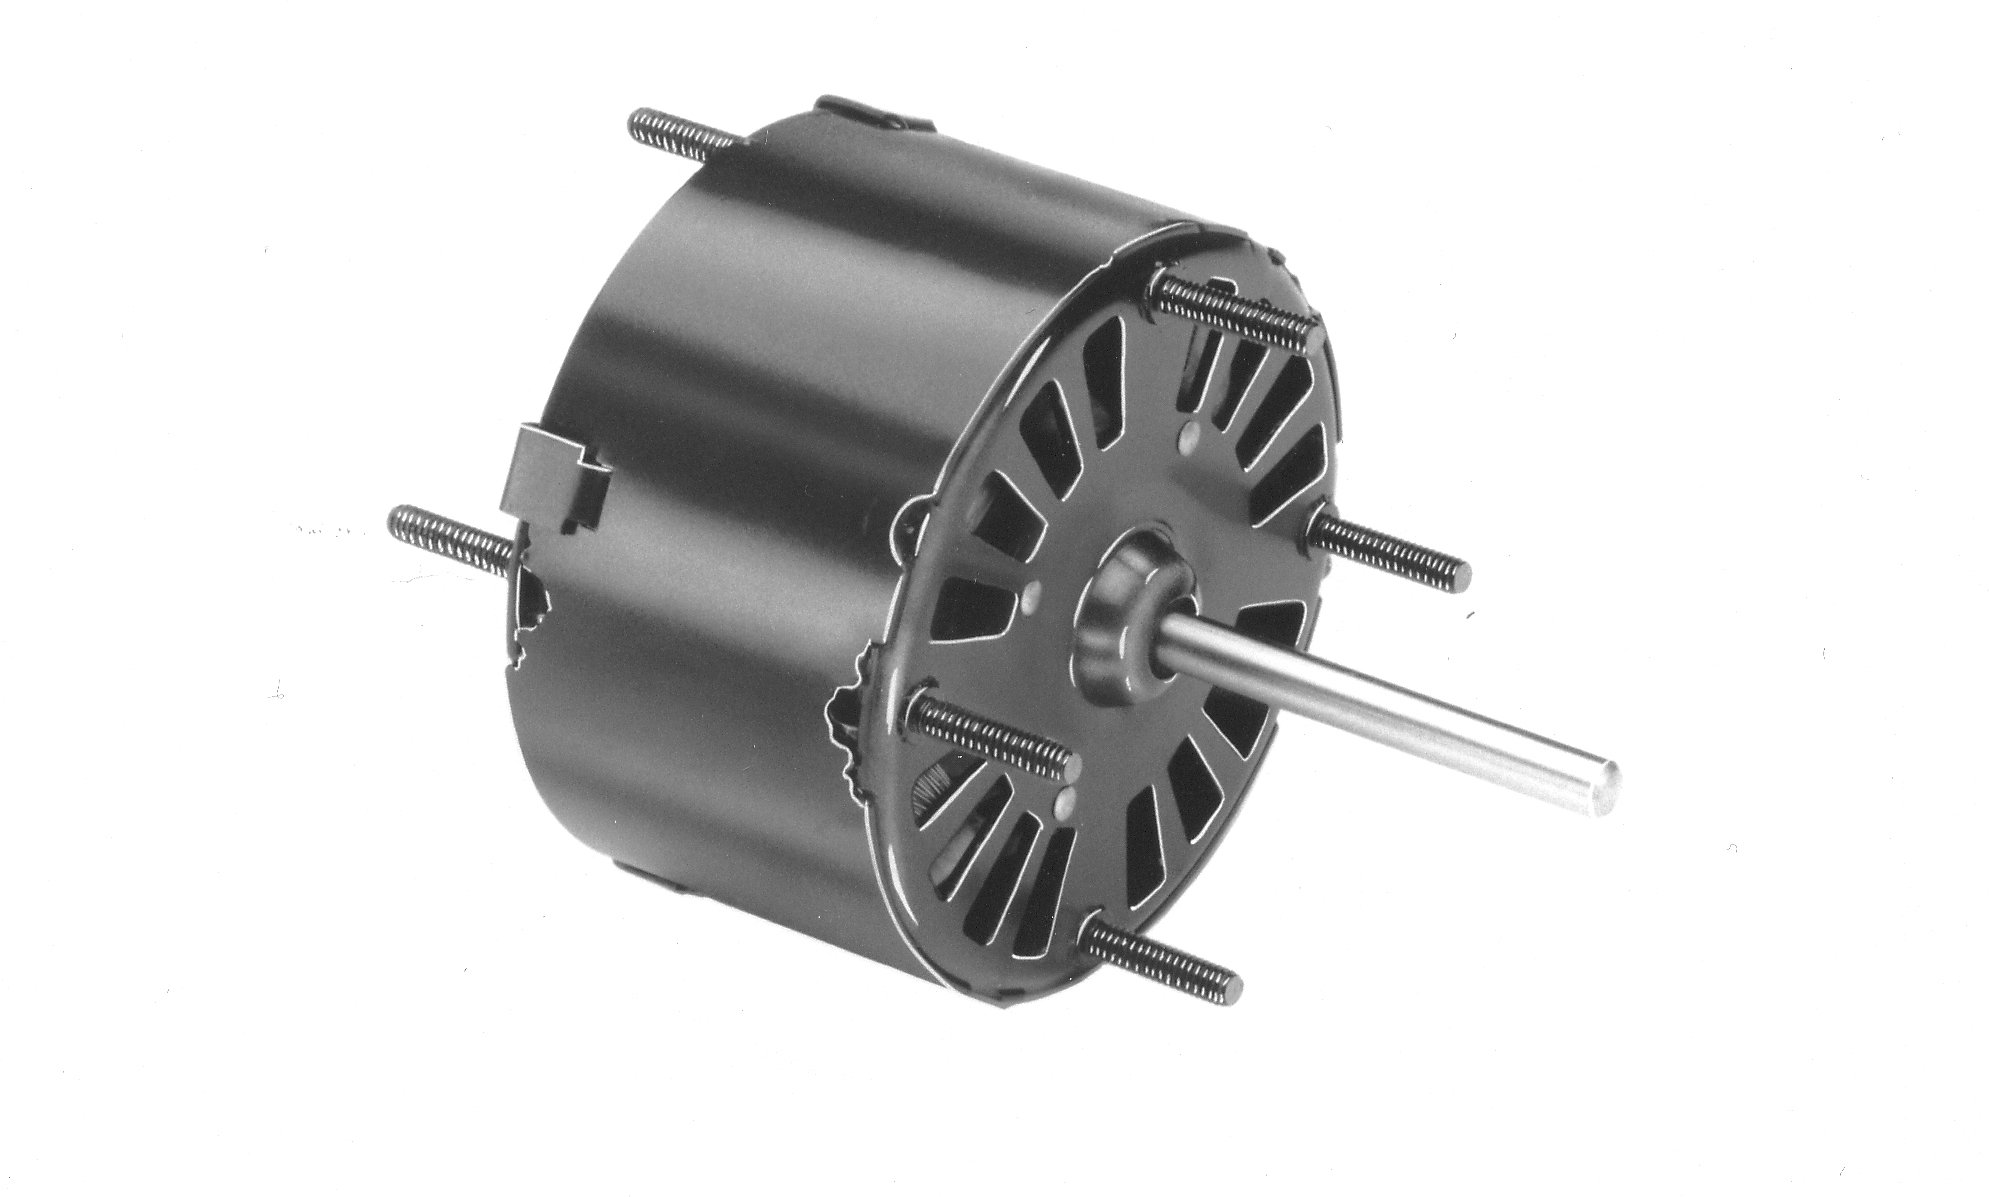 Fasco D132 3.3'' Frame Open Ventilated Shaded Pole General Purpose Motor with Sleeve Bearing, 1/20HP, 1500rpm, 115V, 60Hz, 1.8 amps, CW Rotation